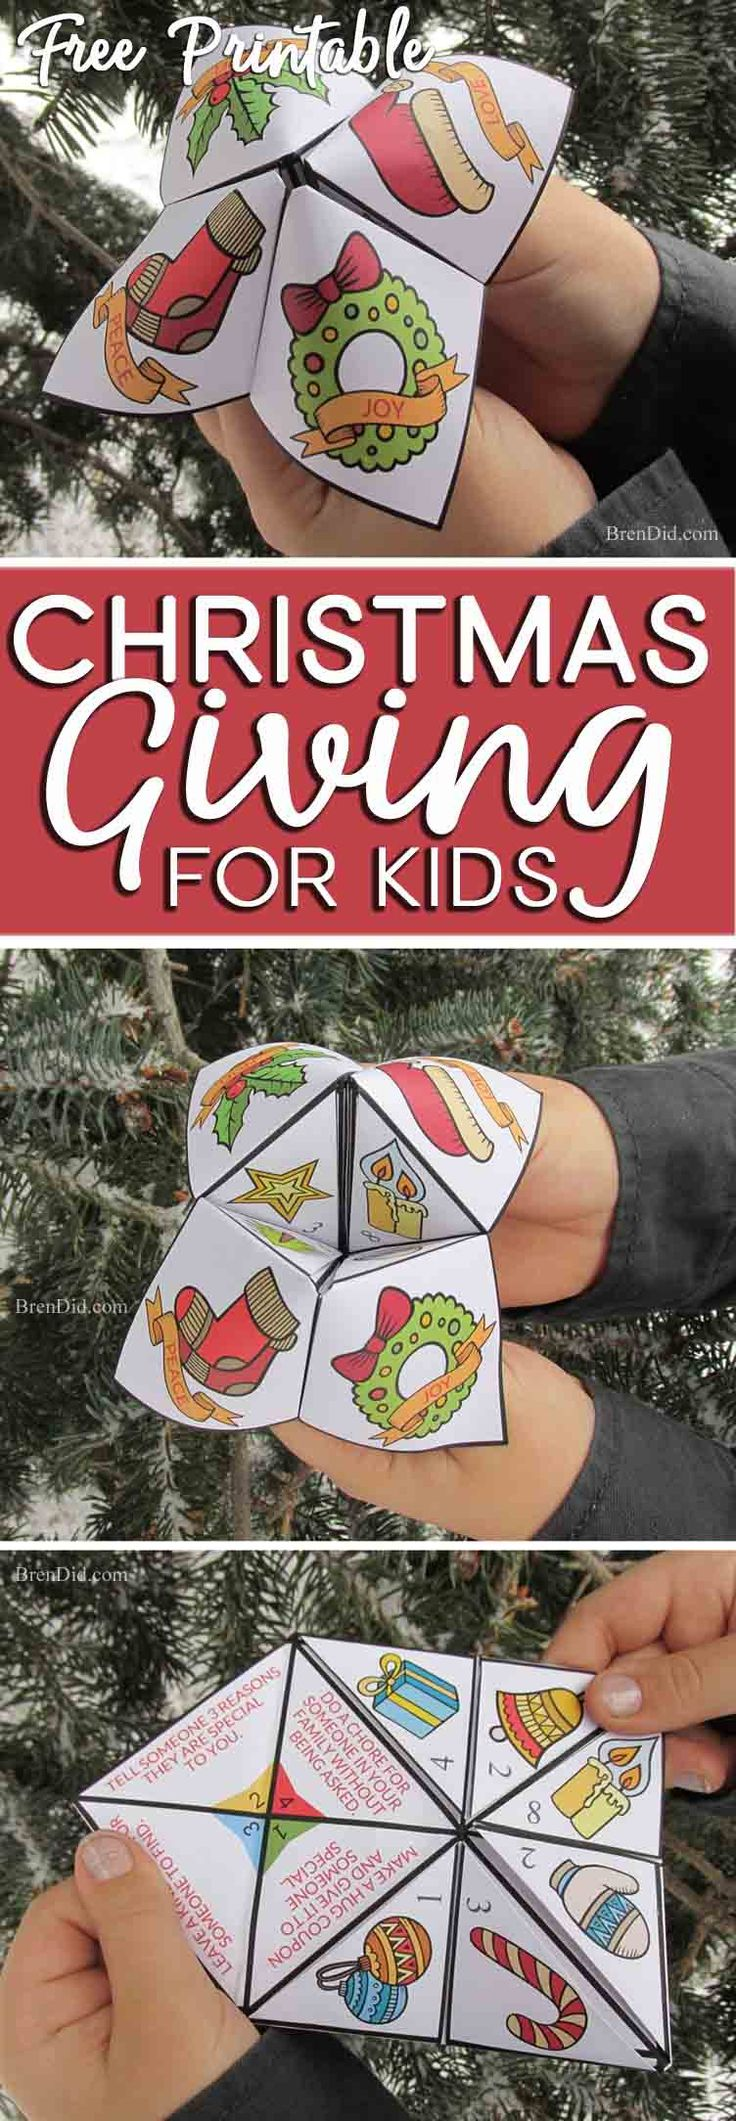 """Christmas Cootie Catcher - Teach kids about giving through simple acts of kindness. This fun """"fortune teller"""" is filled with easy, child-sized activities. Kids can help with a chore, give a friend a paper snowflake, pick up litter, and more! Get the free printable & practice kindness all season long!"""